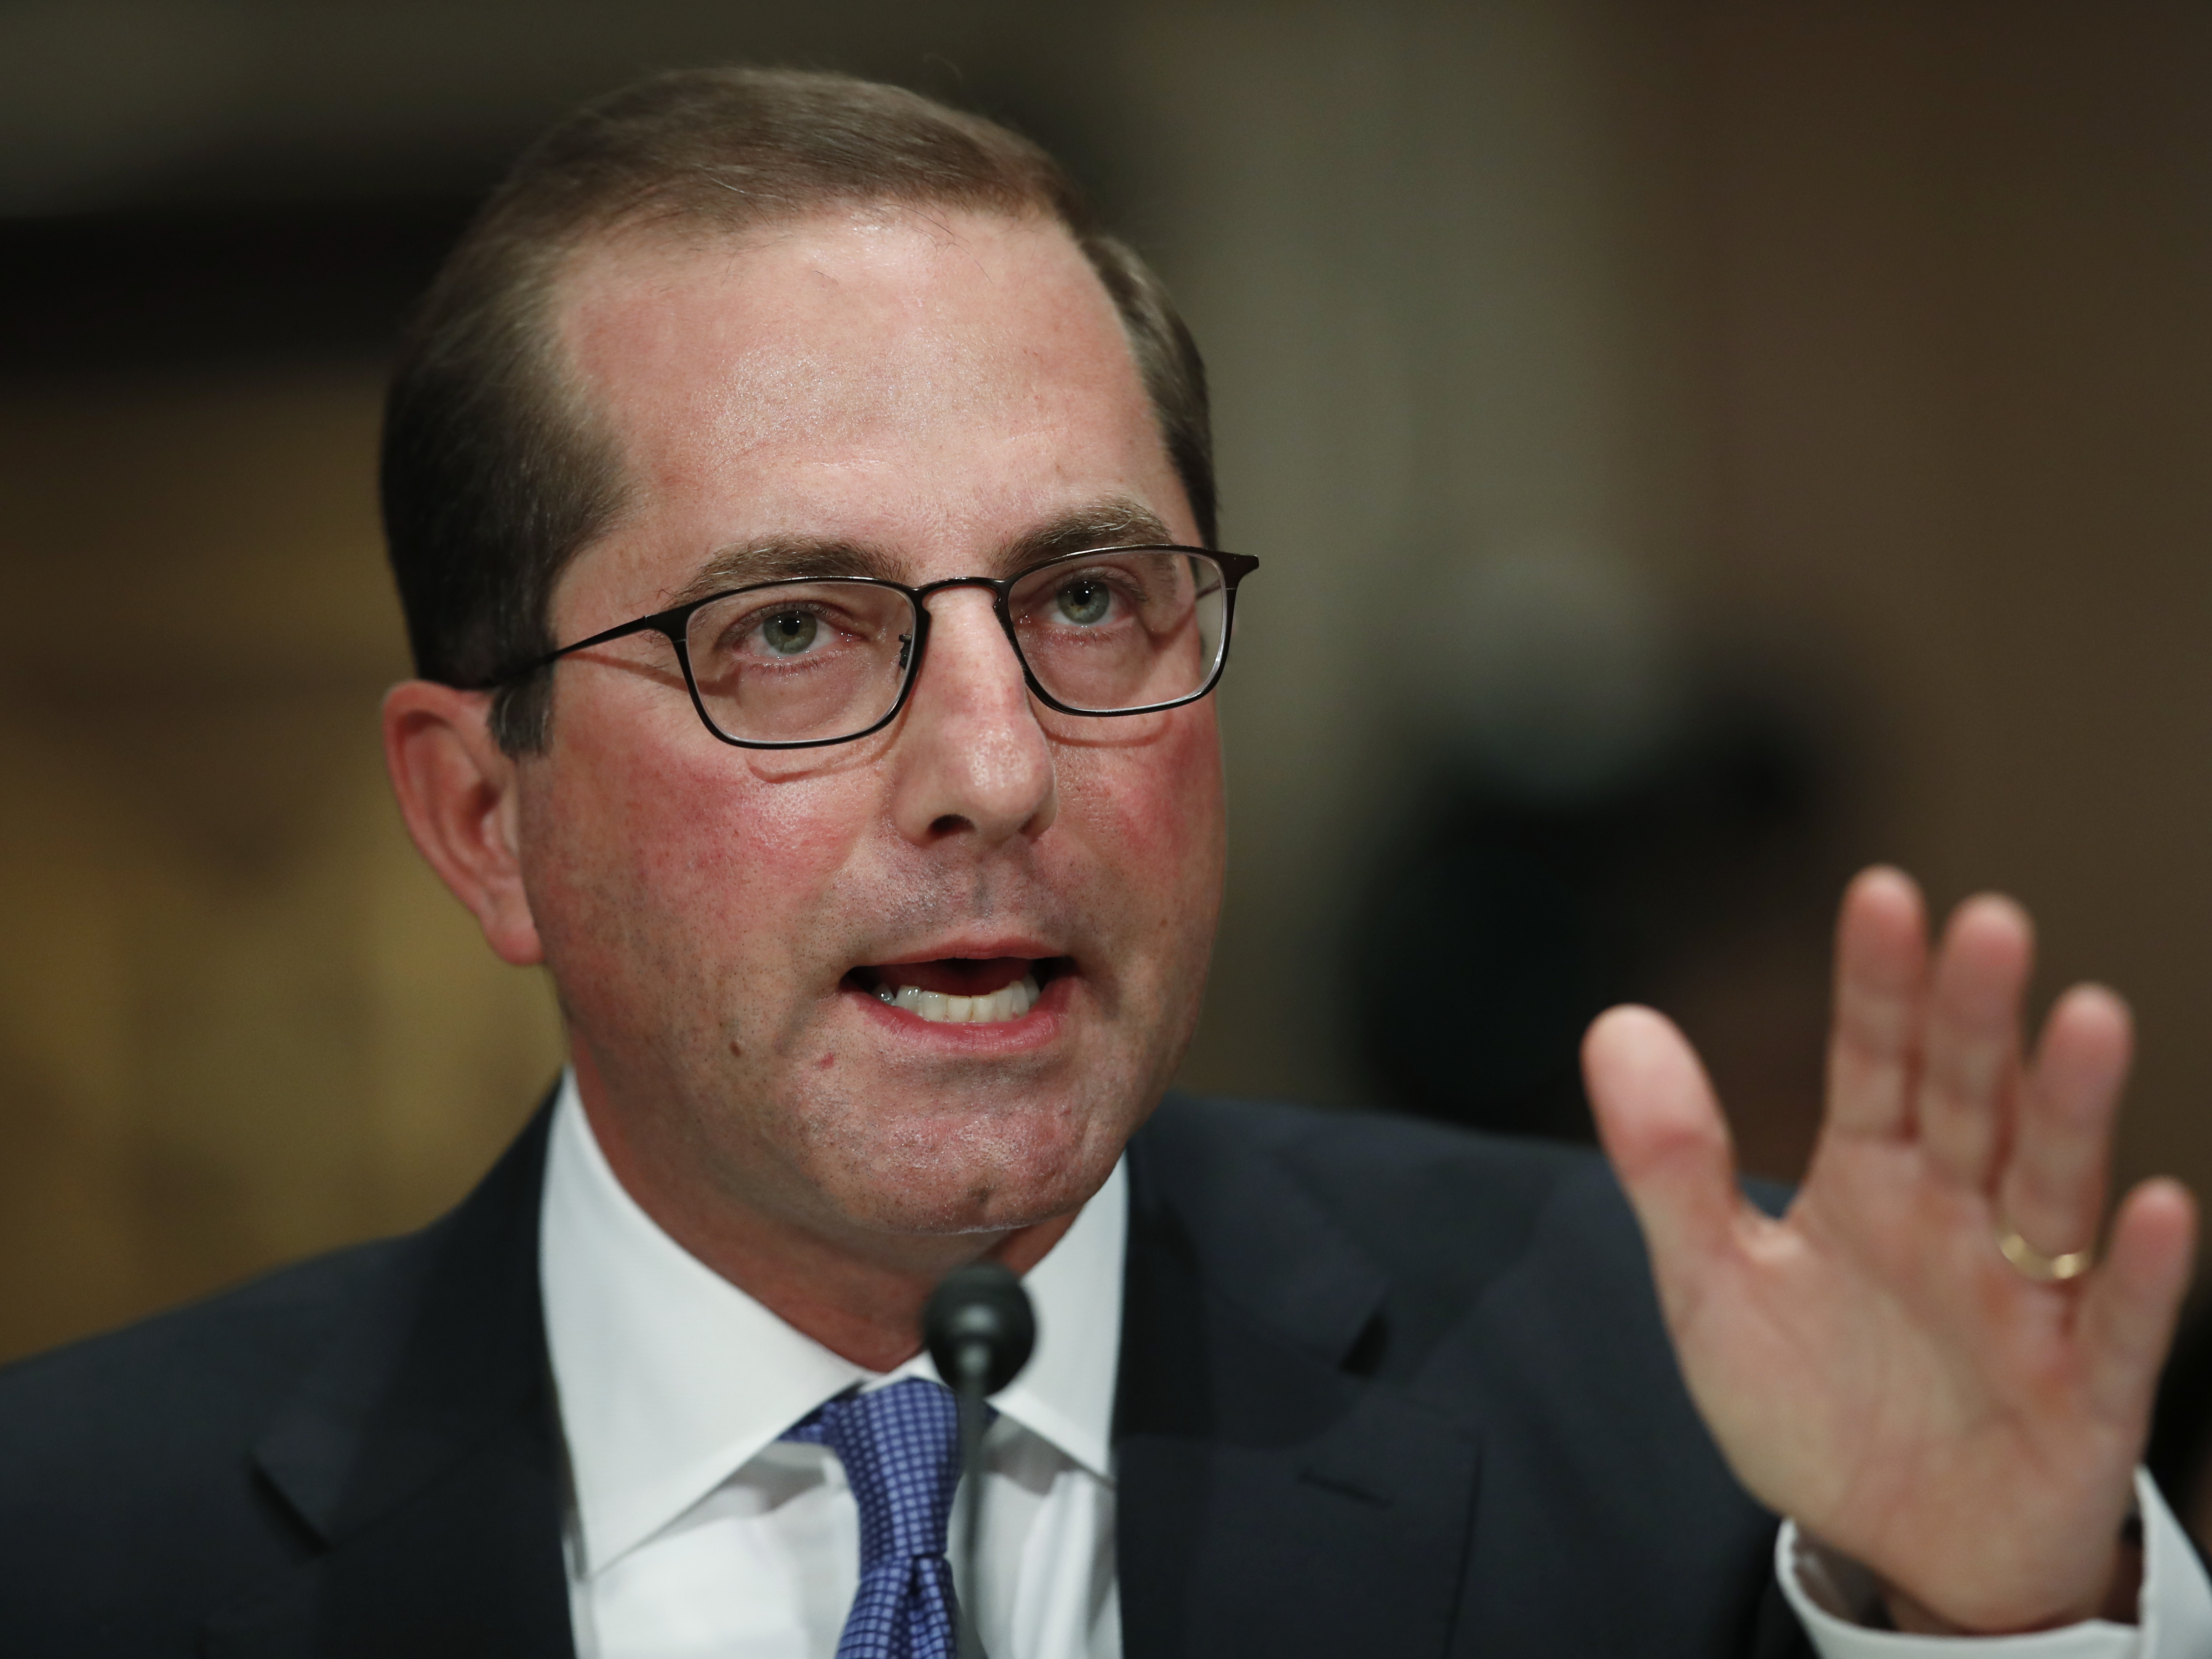 The Senate has confirmed Alex Azar, President Trump's nominee to become Secretary of Health and Human Services.